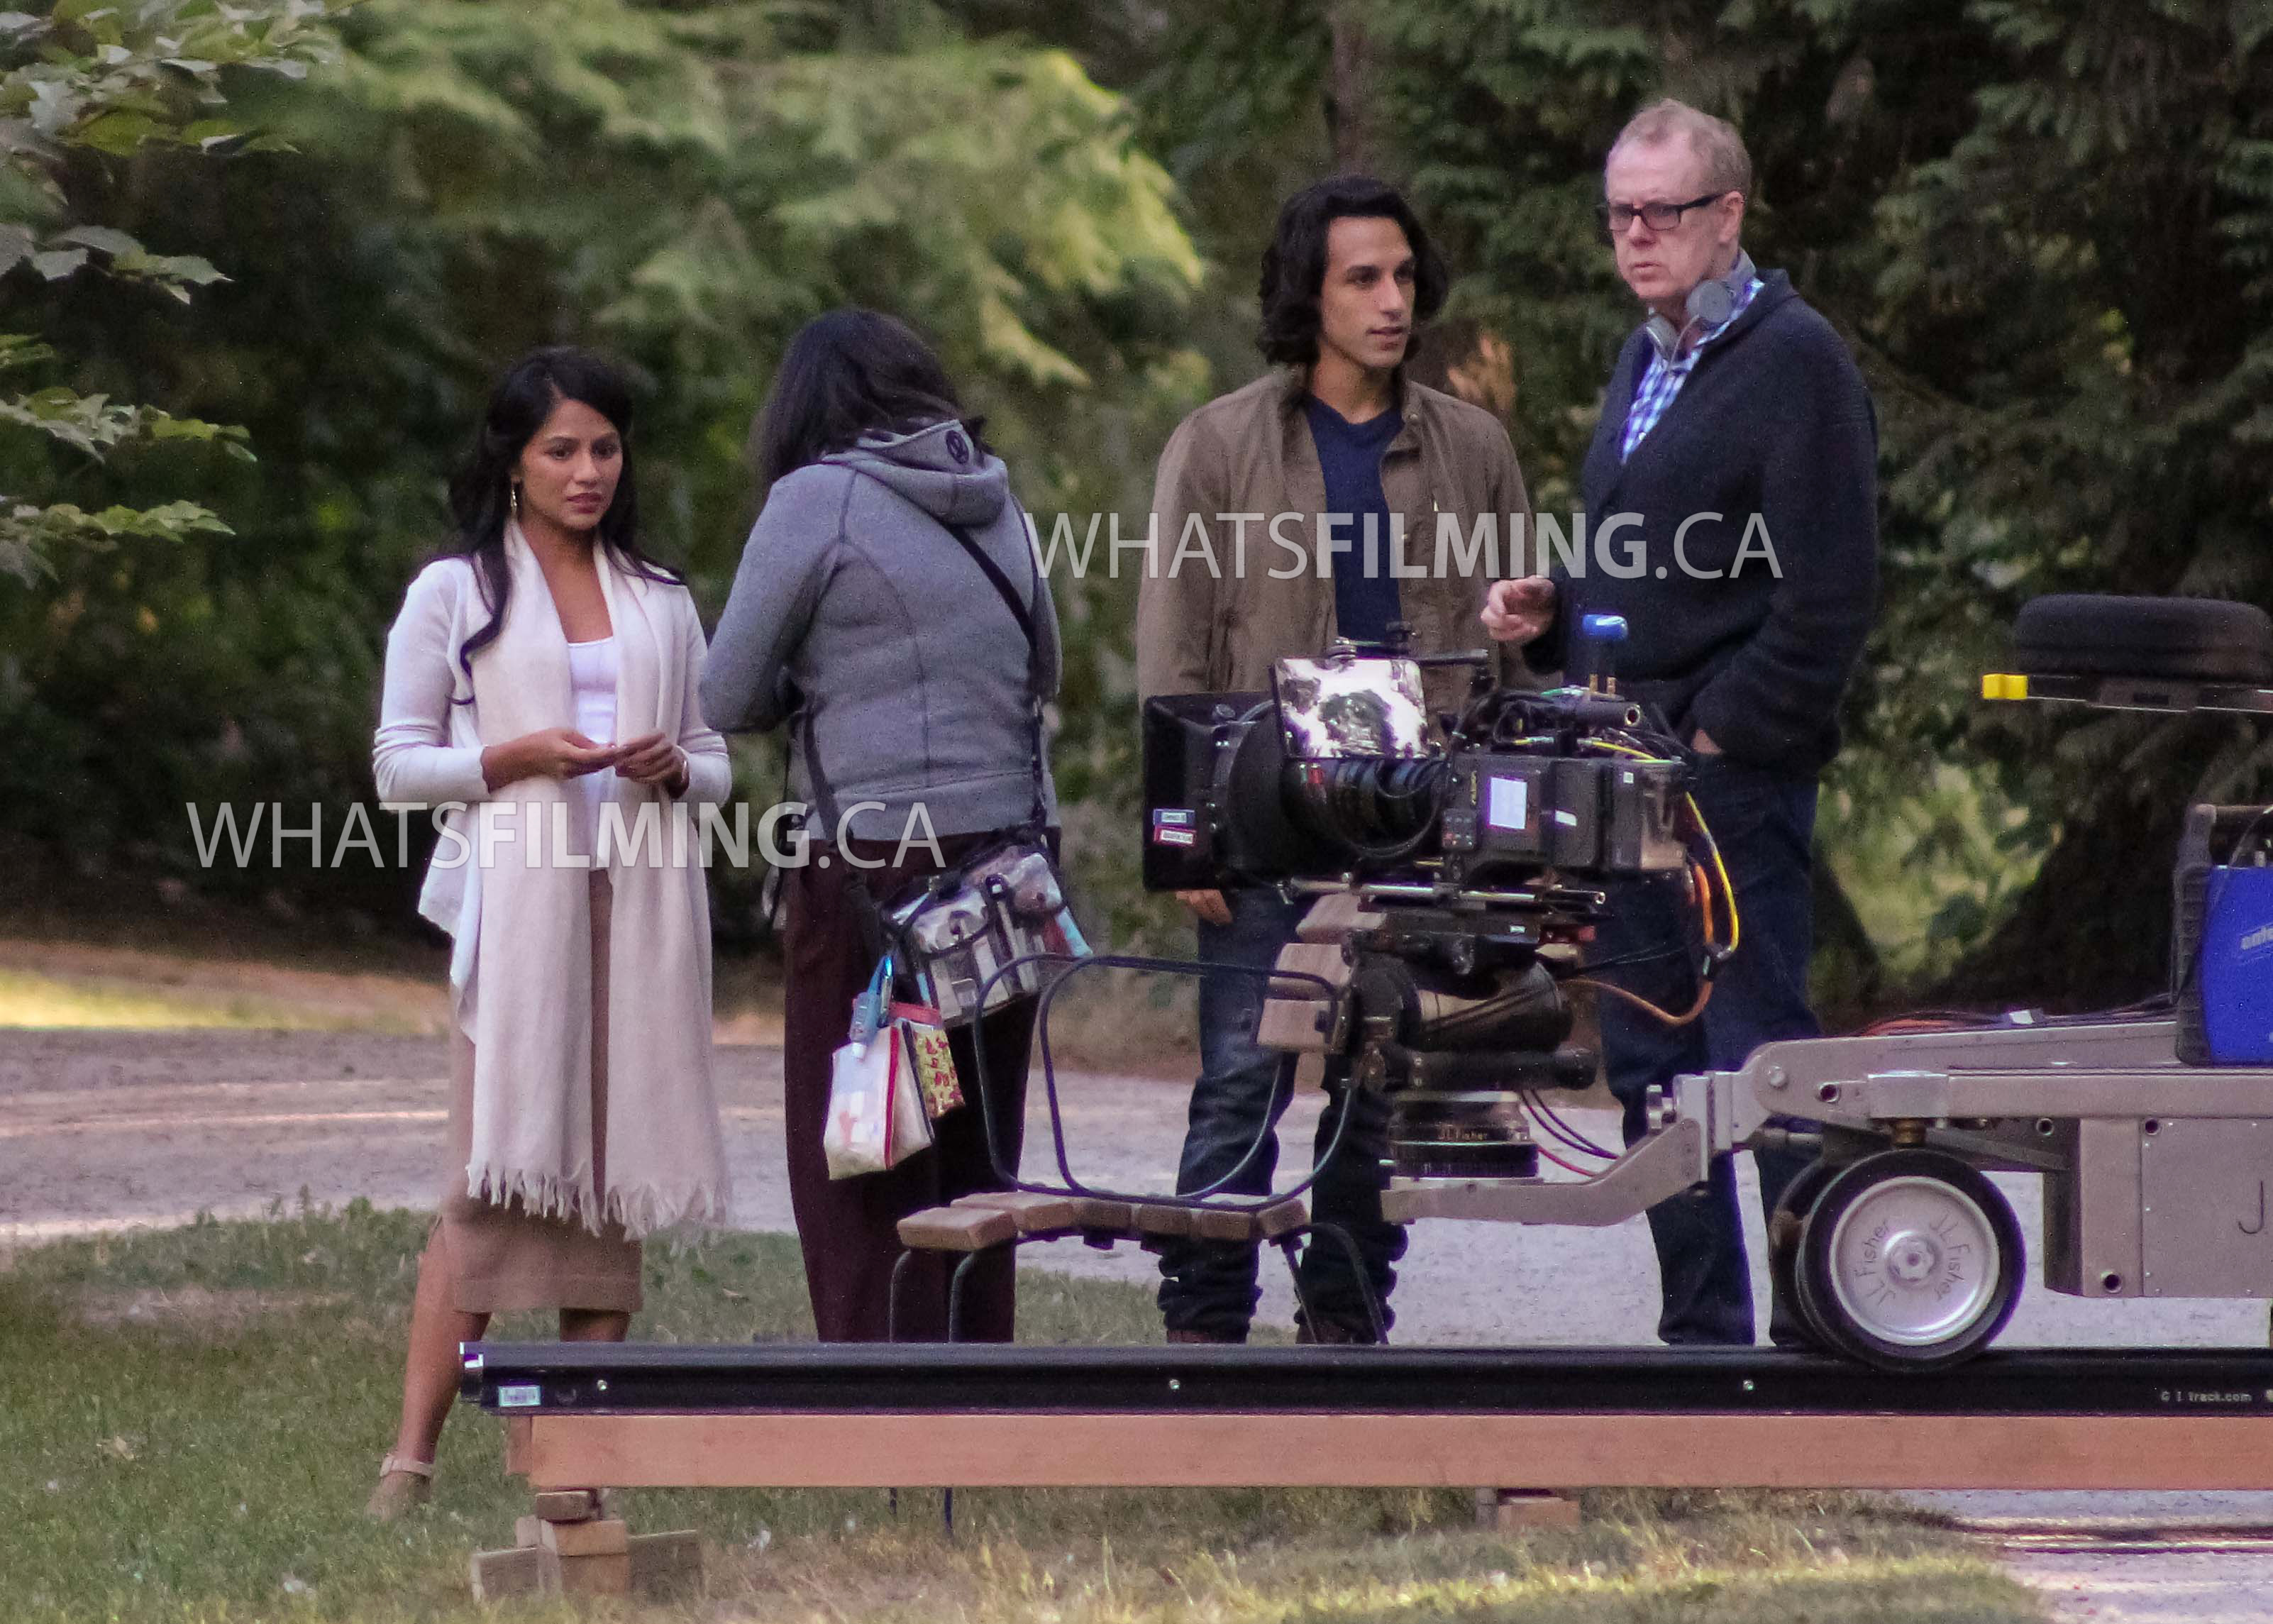 Jasmine and Aladdin Filming Once Upon a Time Season 6 Episode 5